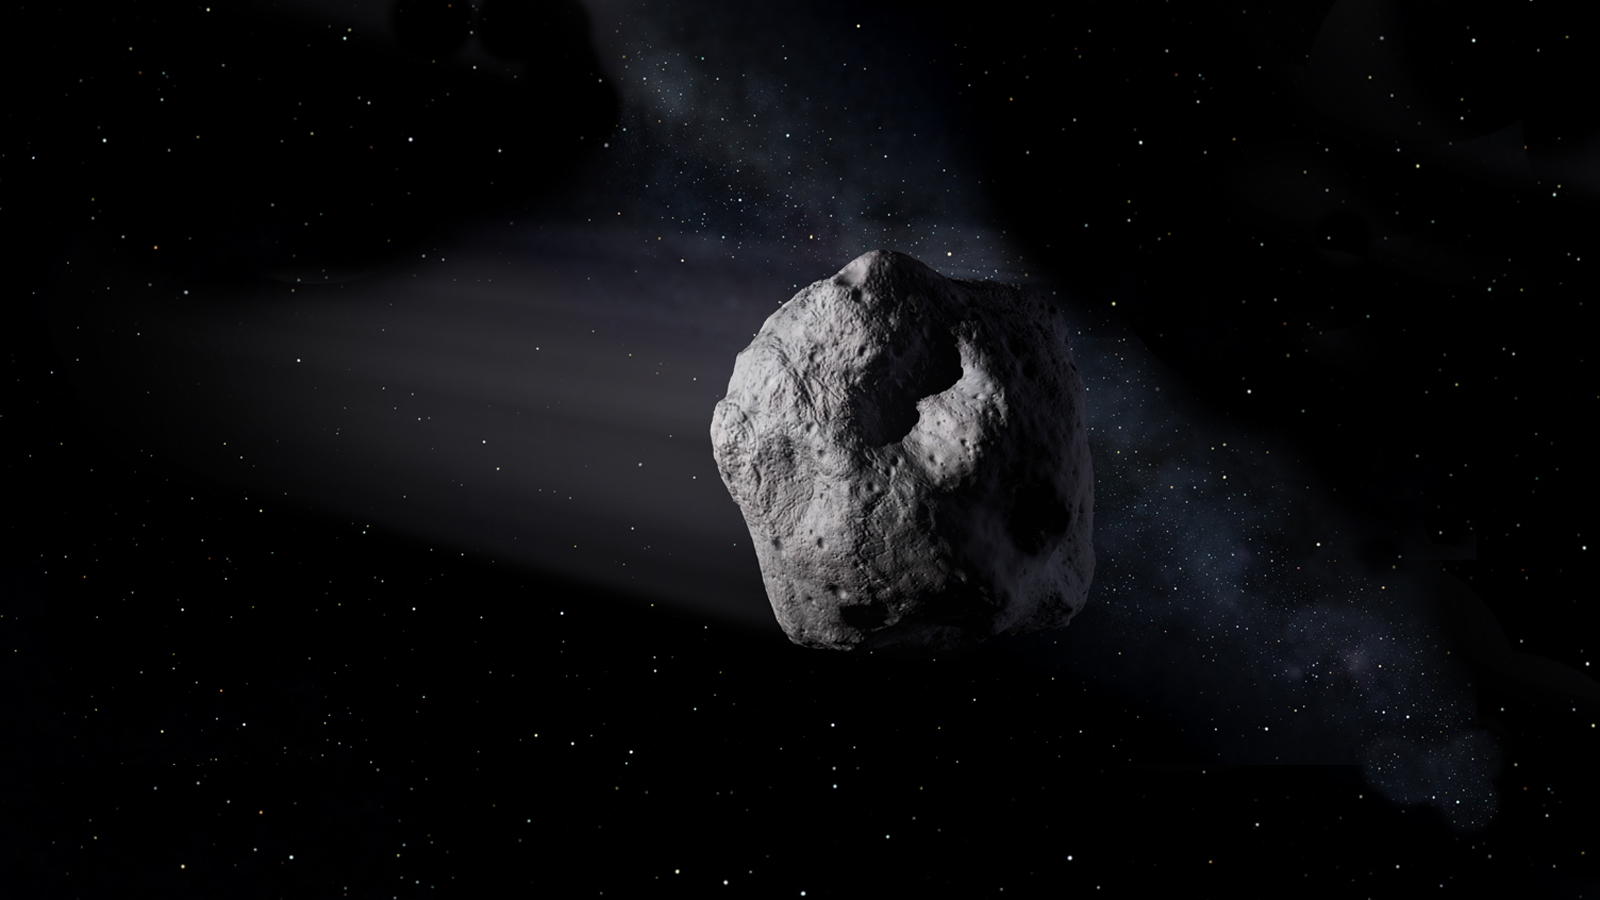 Bus-Size Asteroid Buzzing Earth Tonight Stars in Slooh Webcast